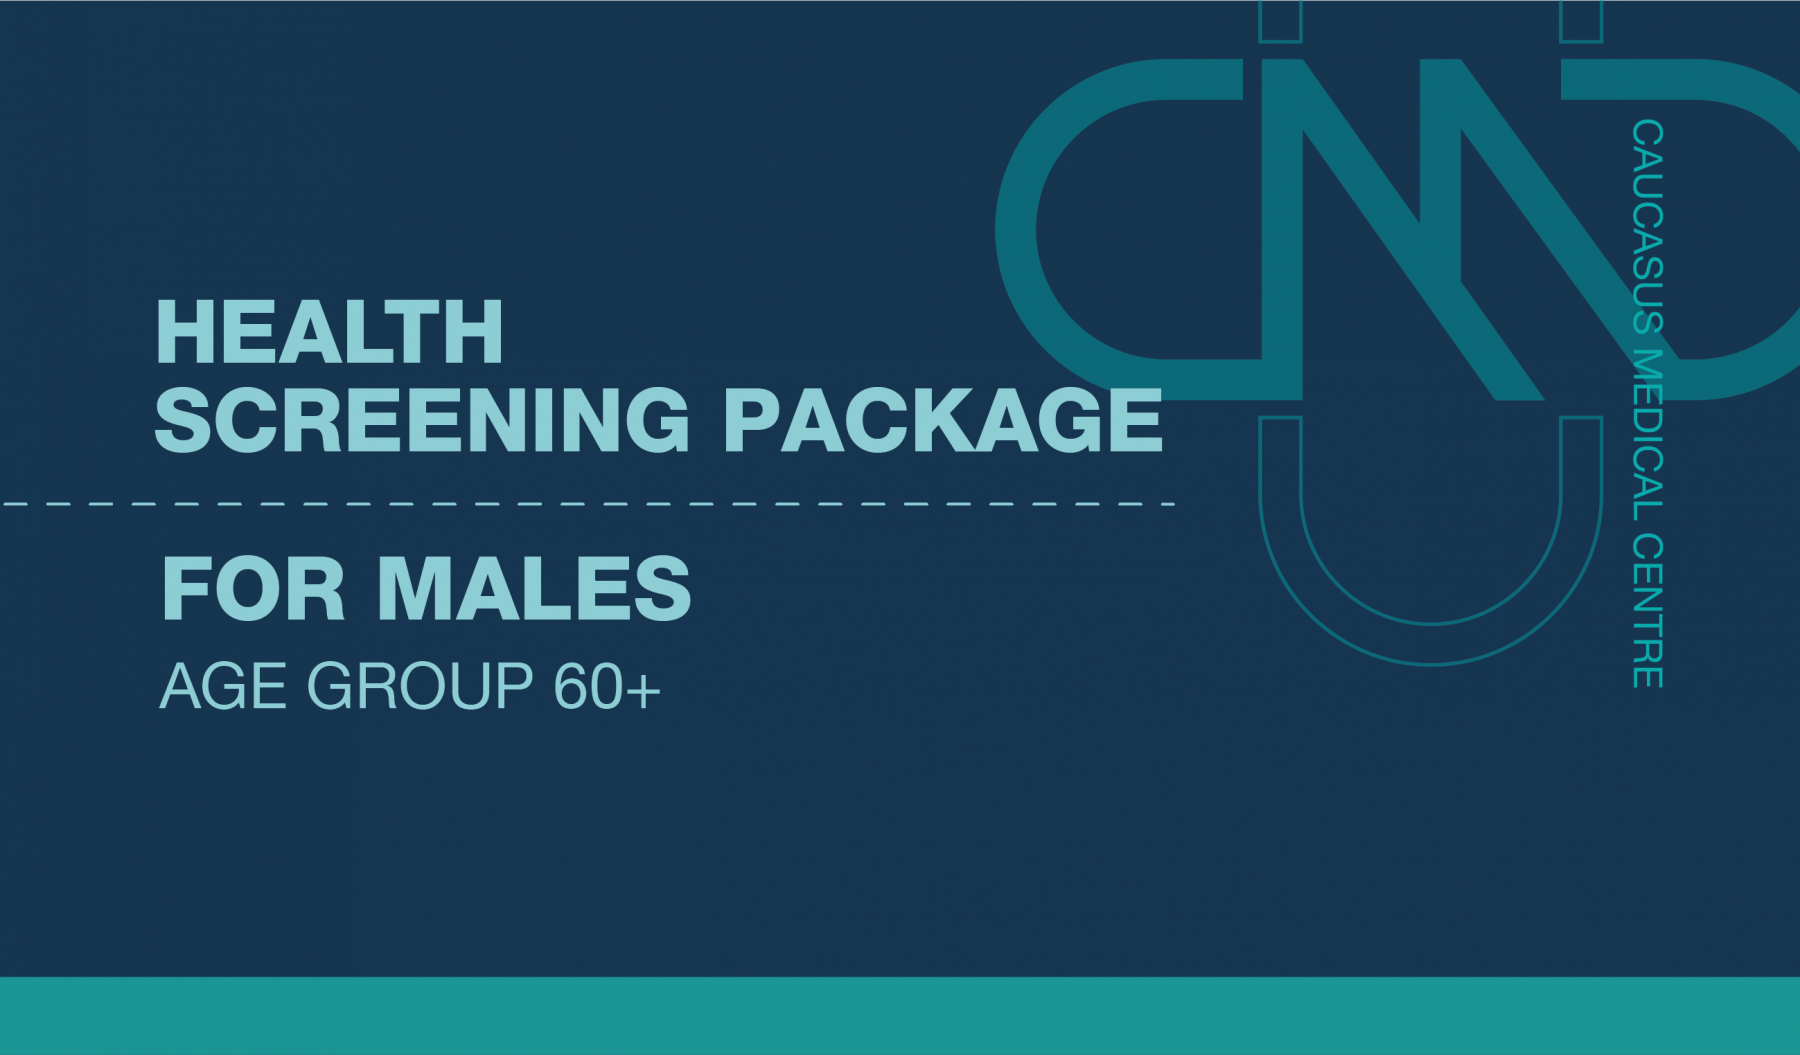 PREMIUM HEALTH SCREENING PACKAGE FOR MALES 60 AND OLDER